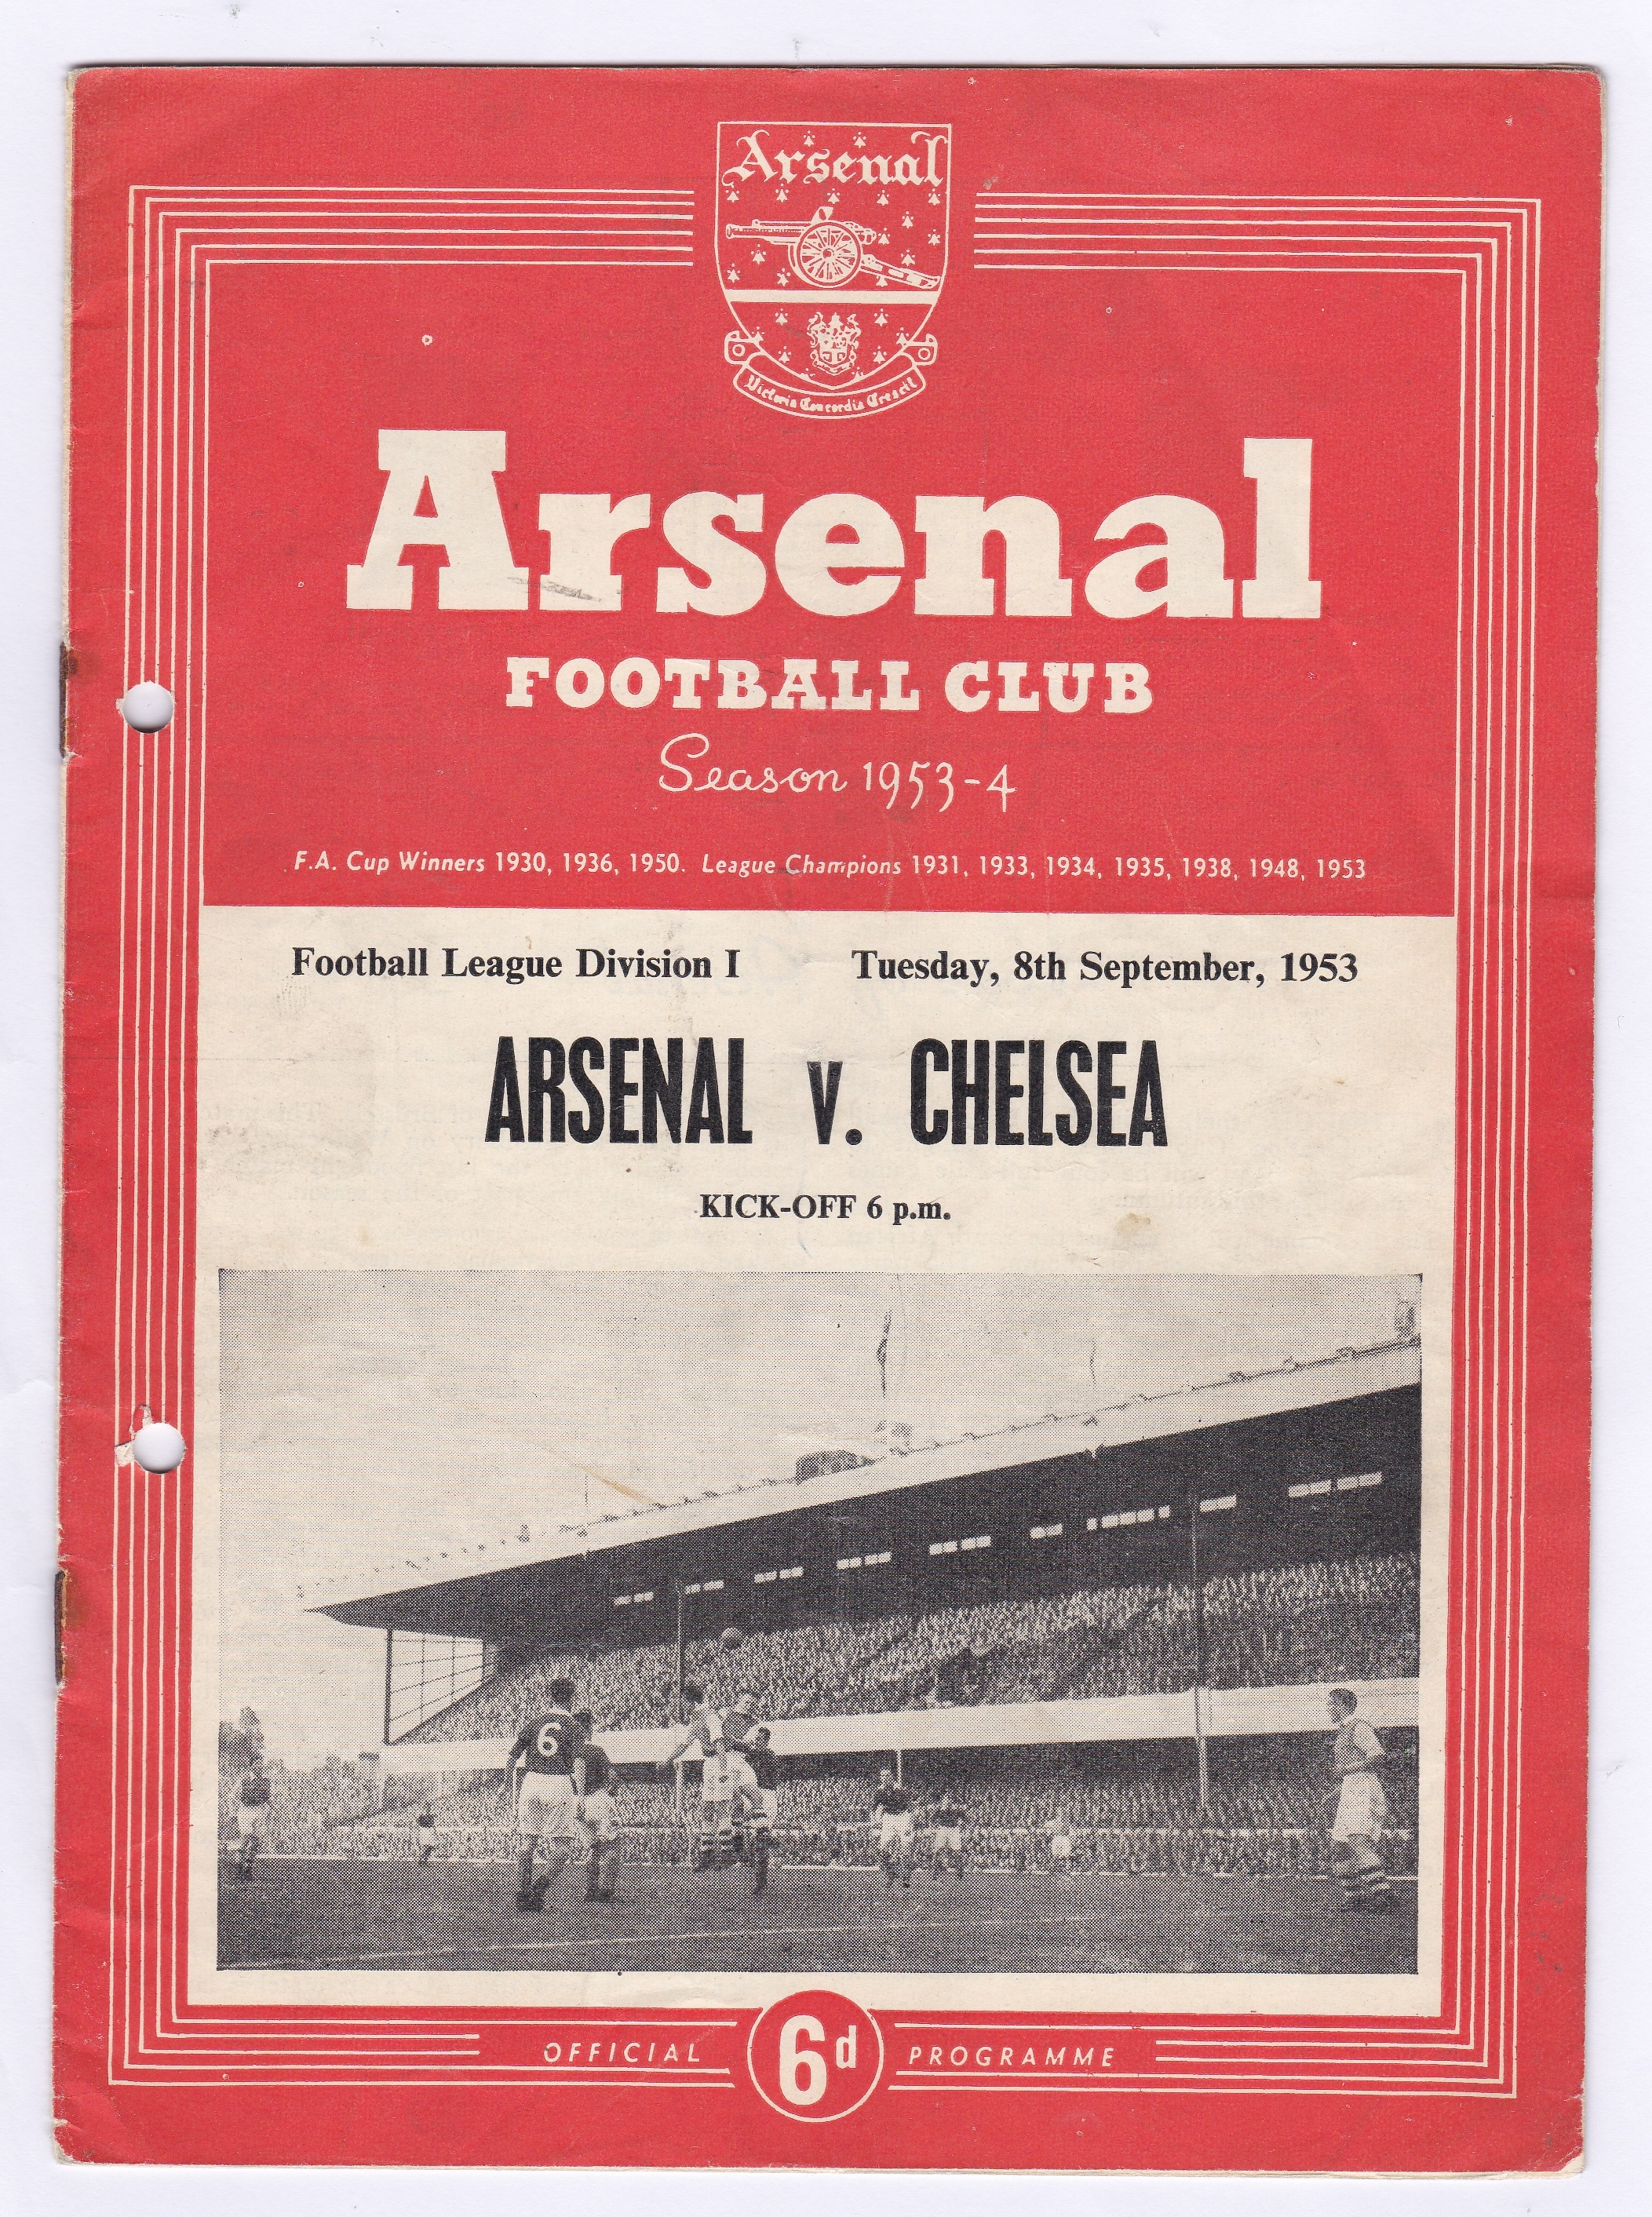 Arsenal v Chelsea 1953 8th September League Division 1 team change in pencil hole punched left